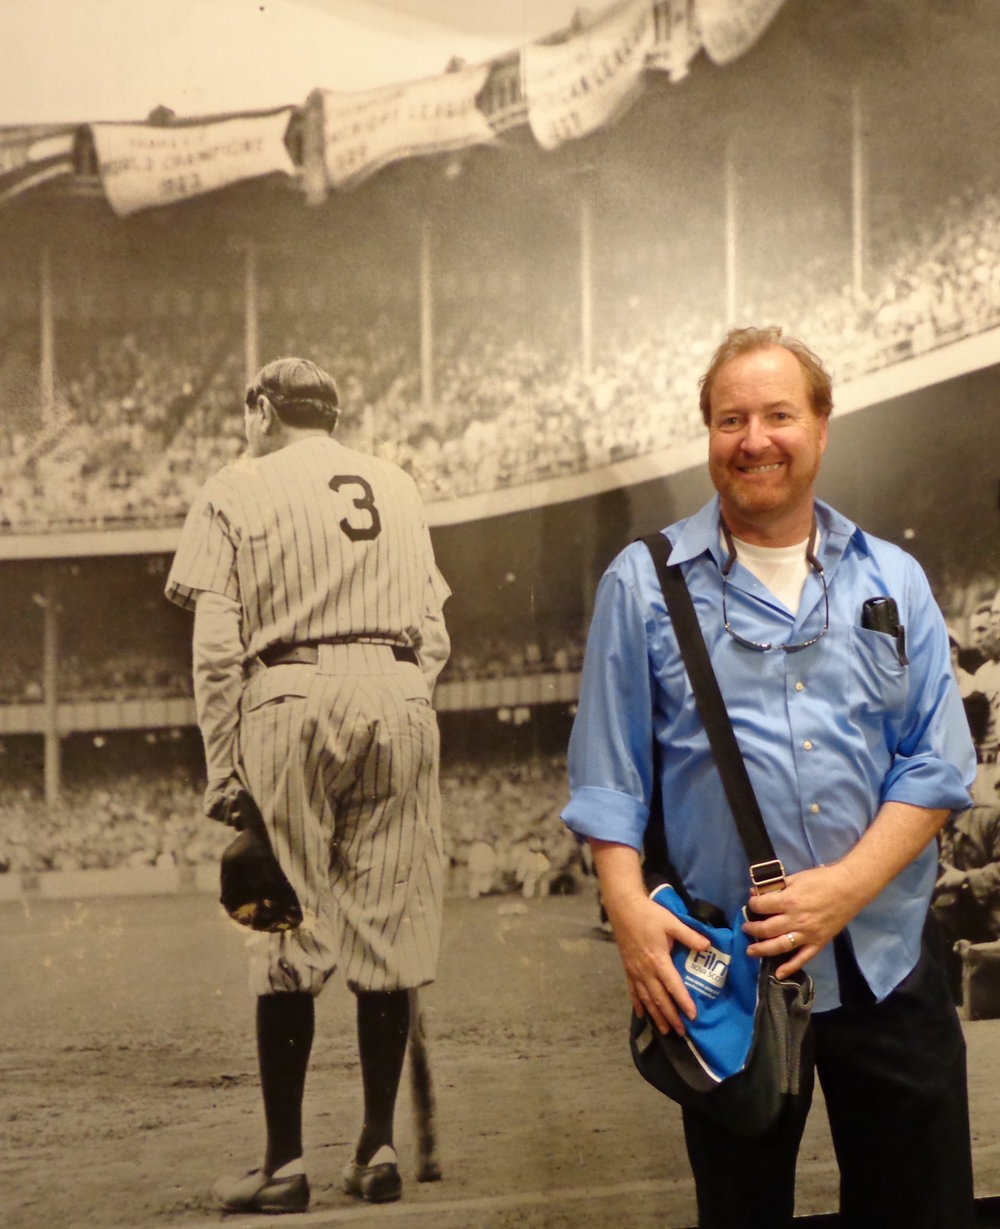 Douglas at the Babe Ruth Museum